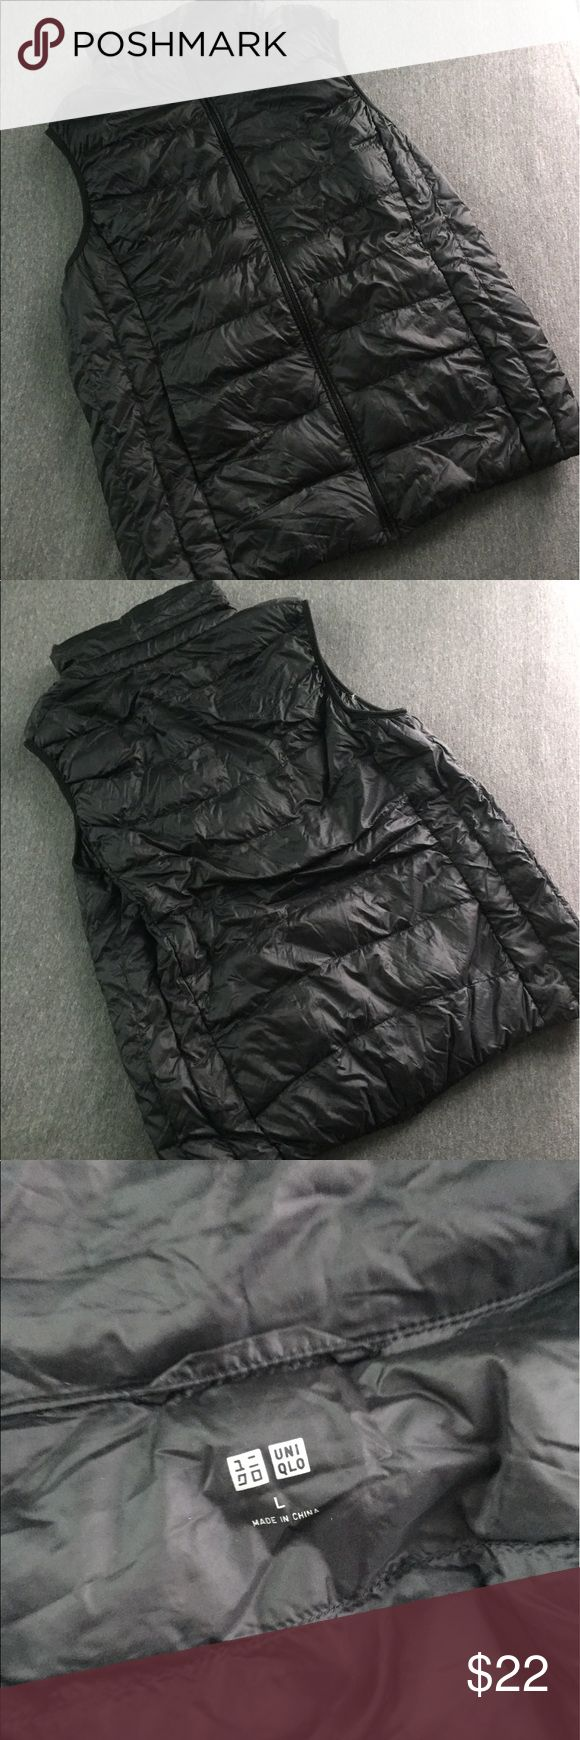 Uniqlo Black Puffer Vest Uniqlo black Puffer Vest. Used, but still in great condition. Bust: 18in laying flat. Length: 23in ALL OFFERS WILL BE CONSIDERED 💙💙💙 Uniqlo Jackets & Coats Vests